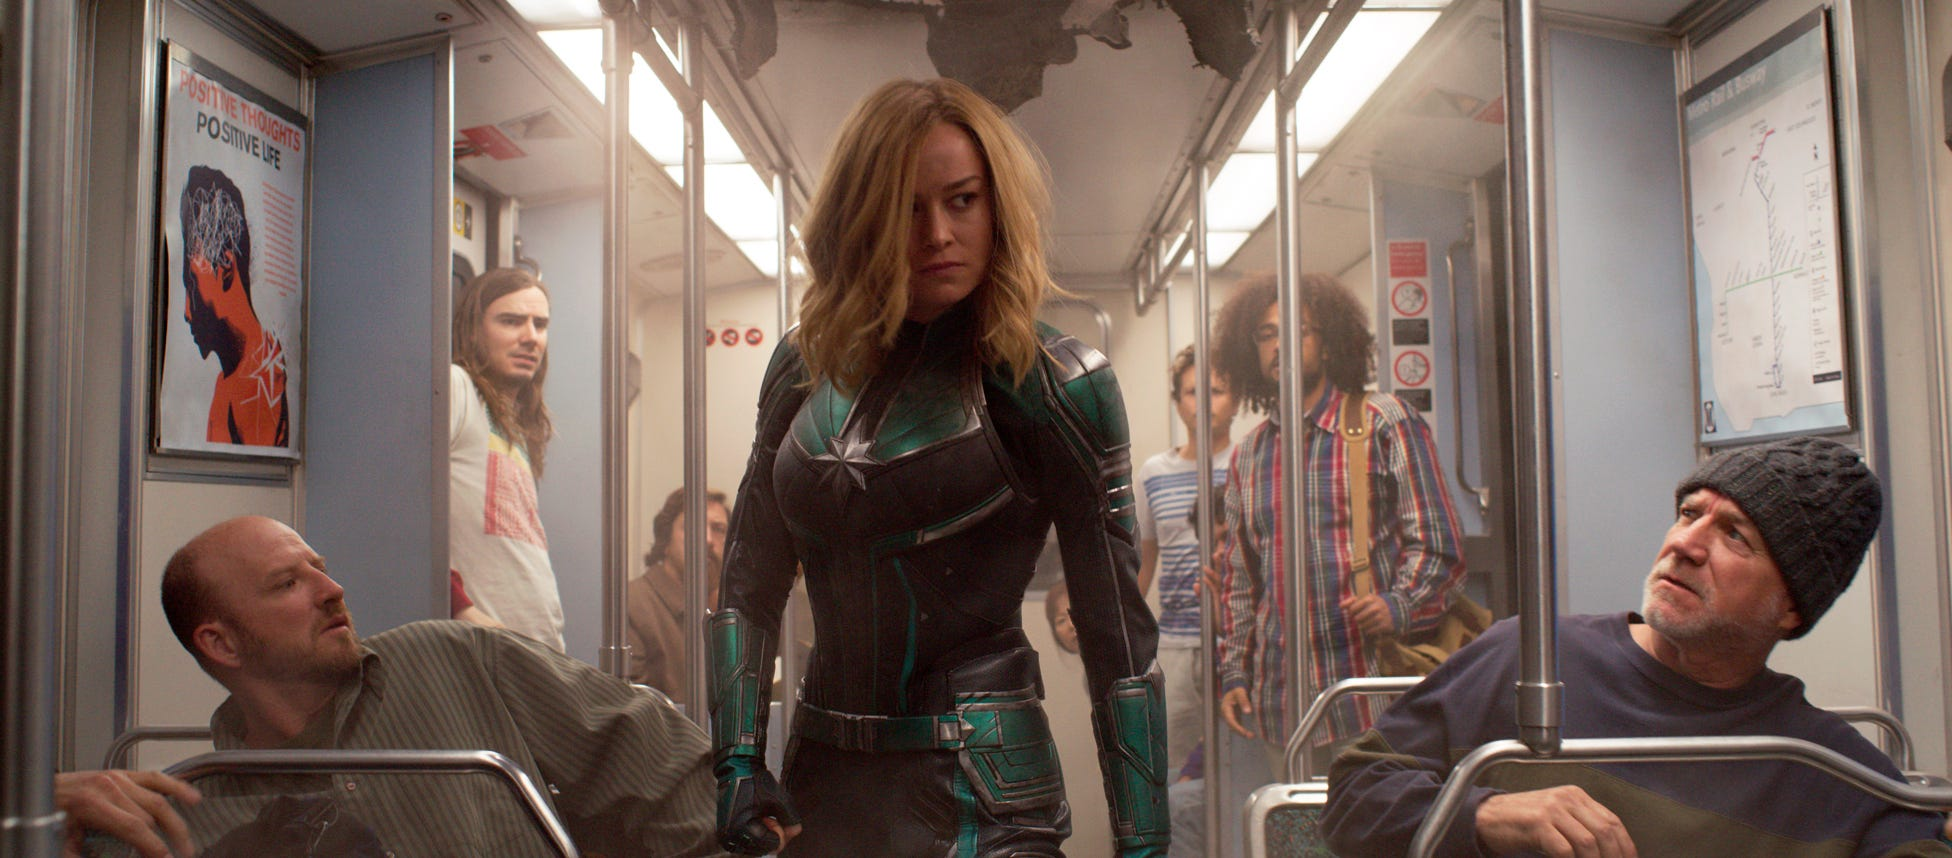 Brie Larson's 'Captain Marvel' soars to new heights at box office: $760M worldwide